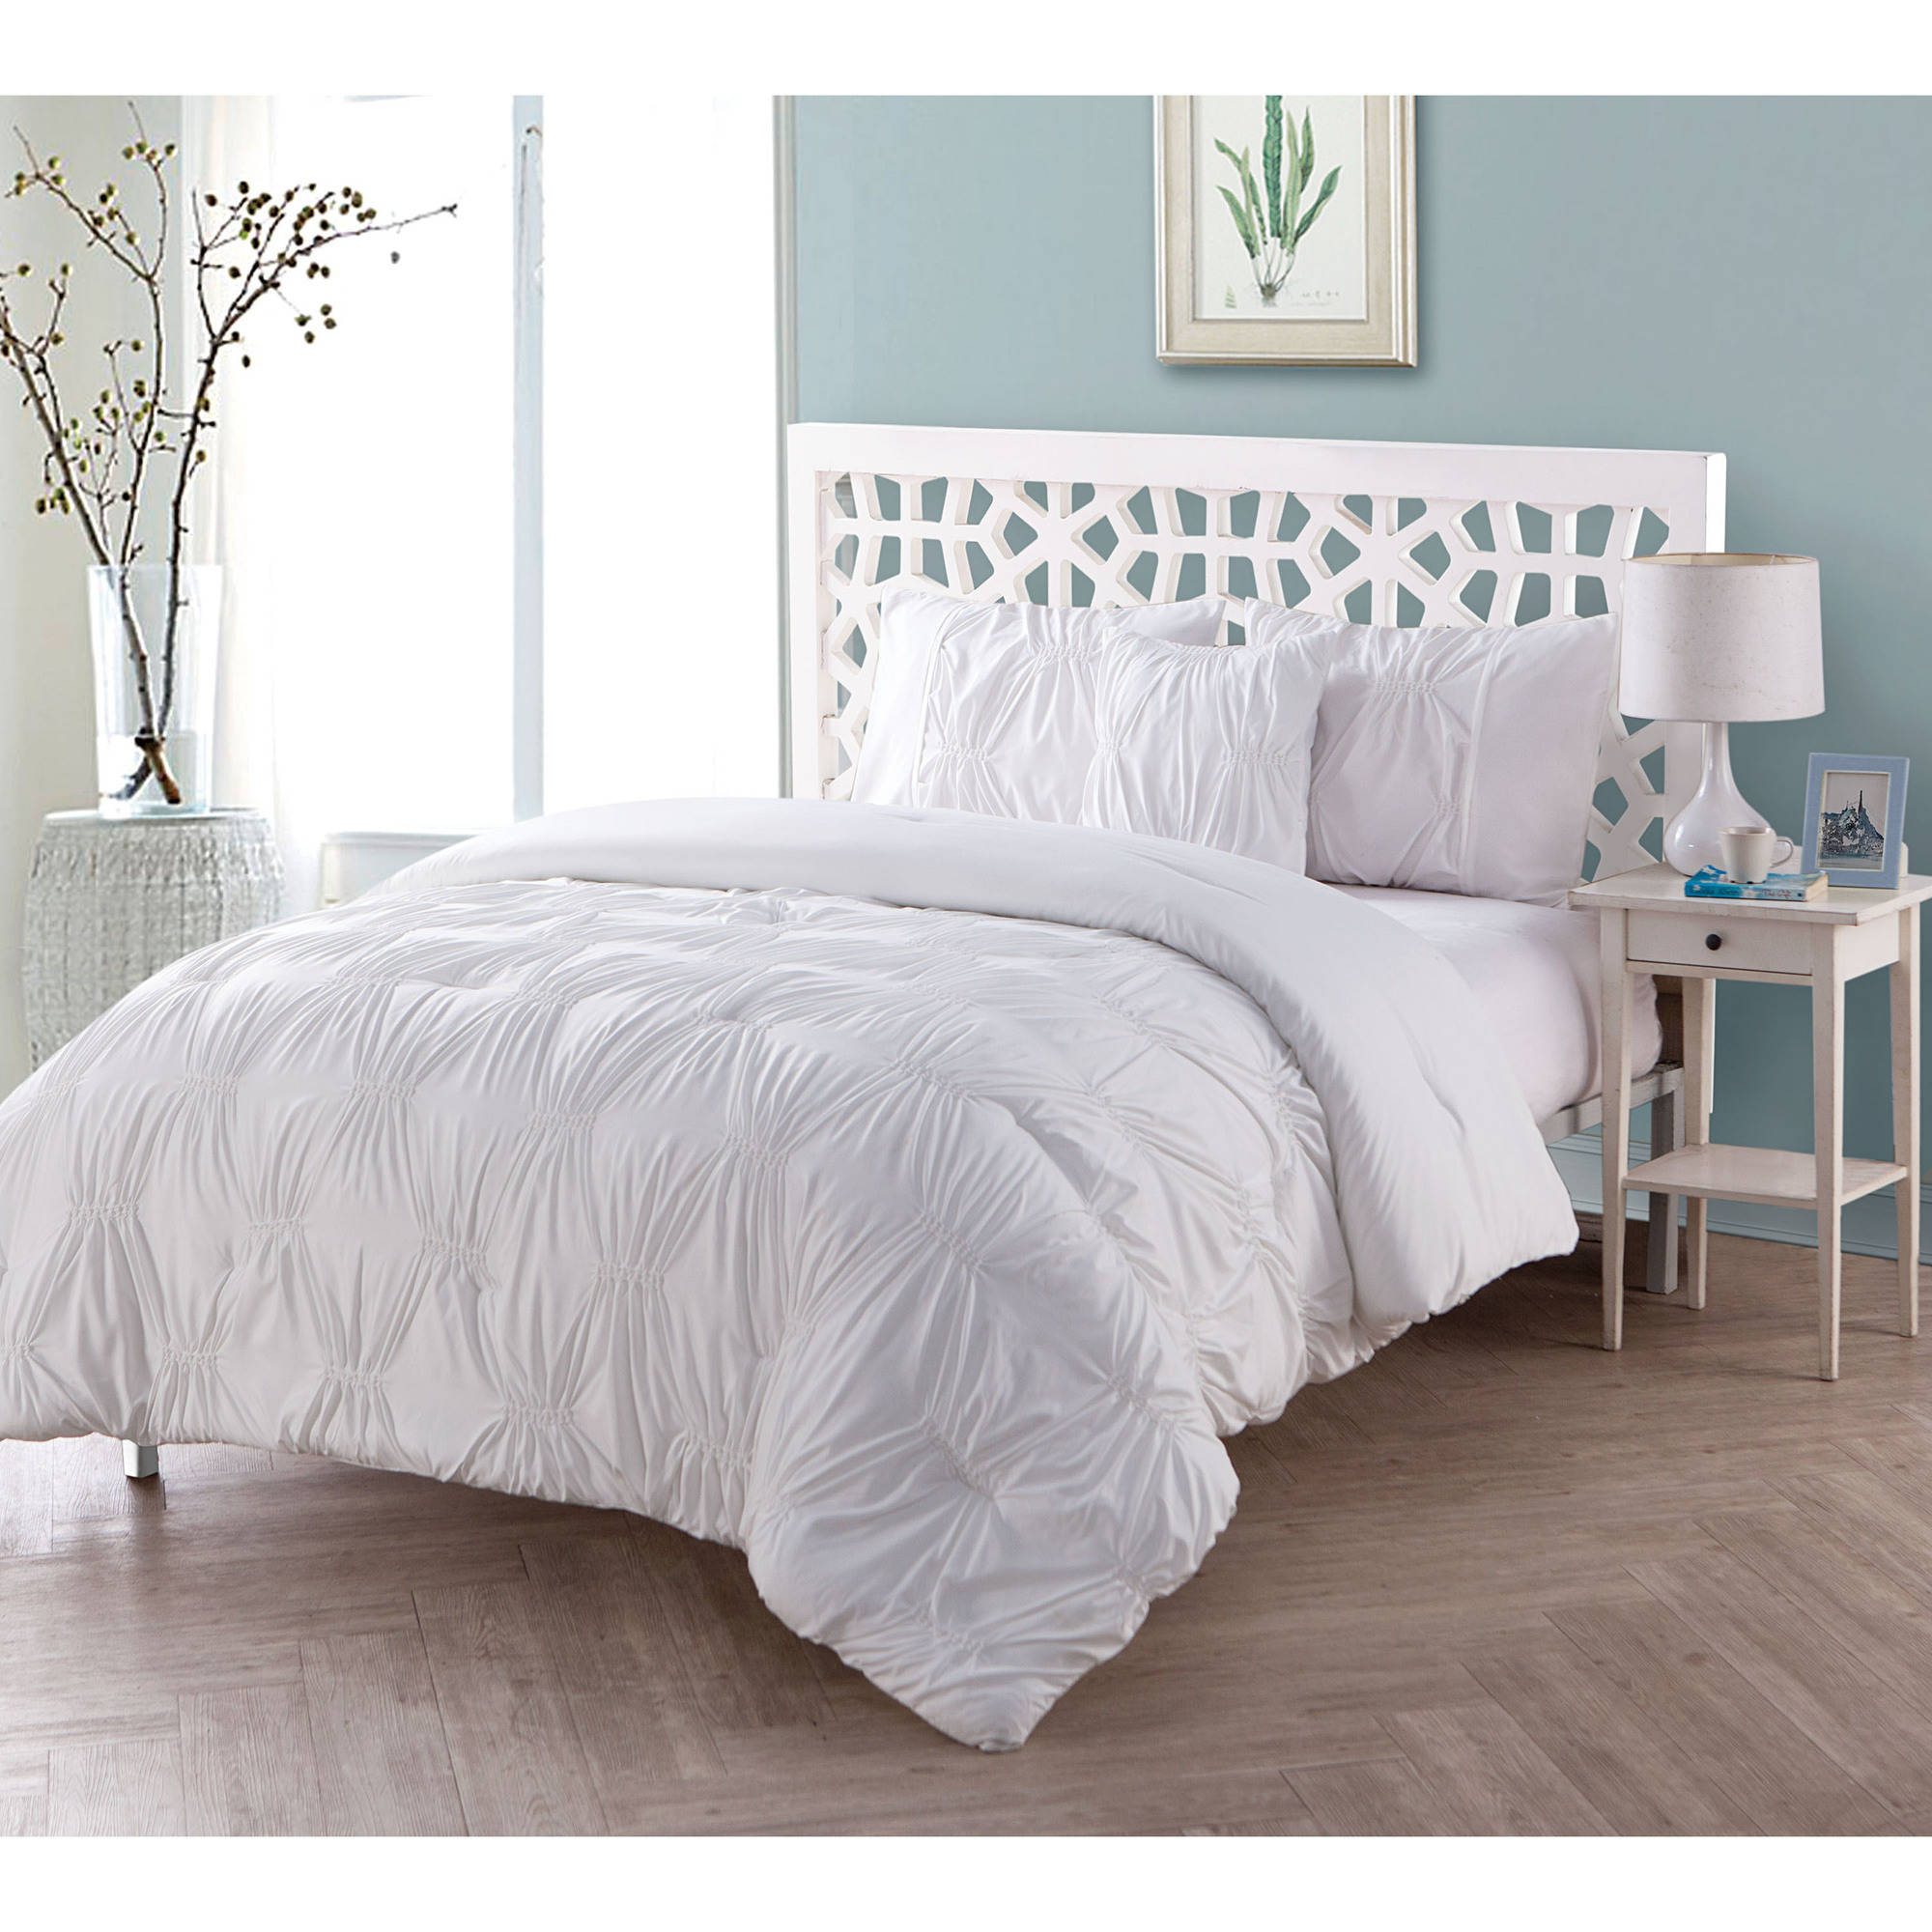 VCNY Home Monica Solid Textured Bedding Comforter Set, Multiple Colors Available